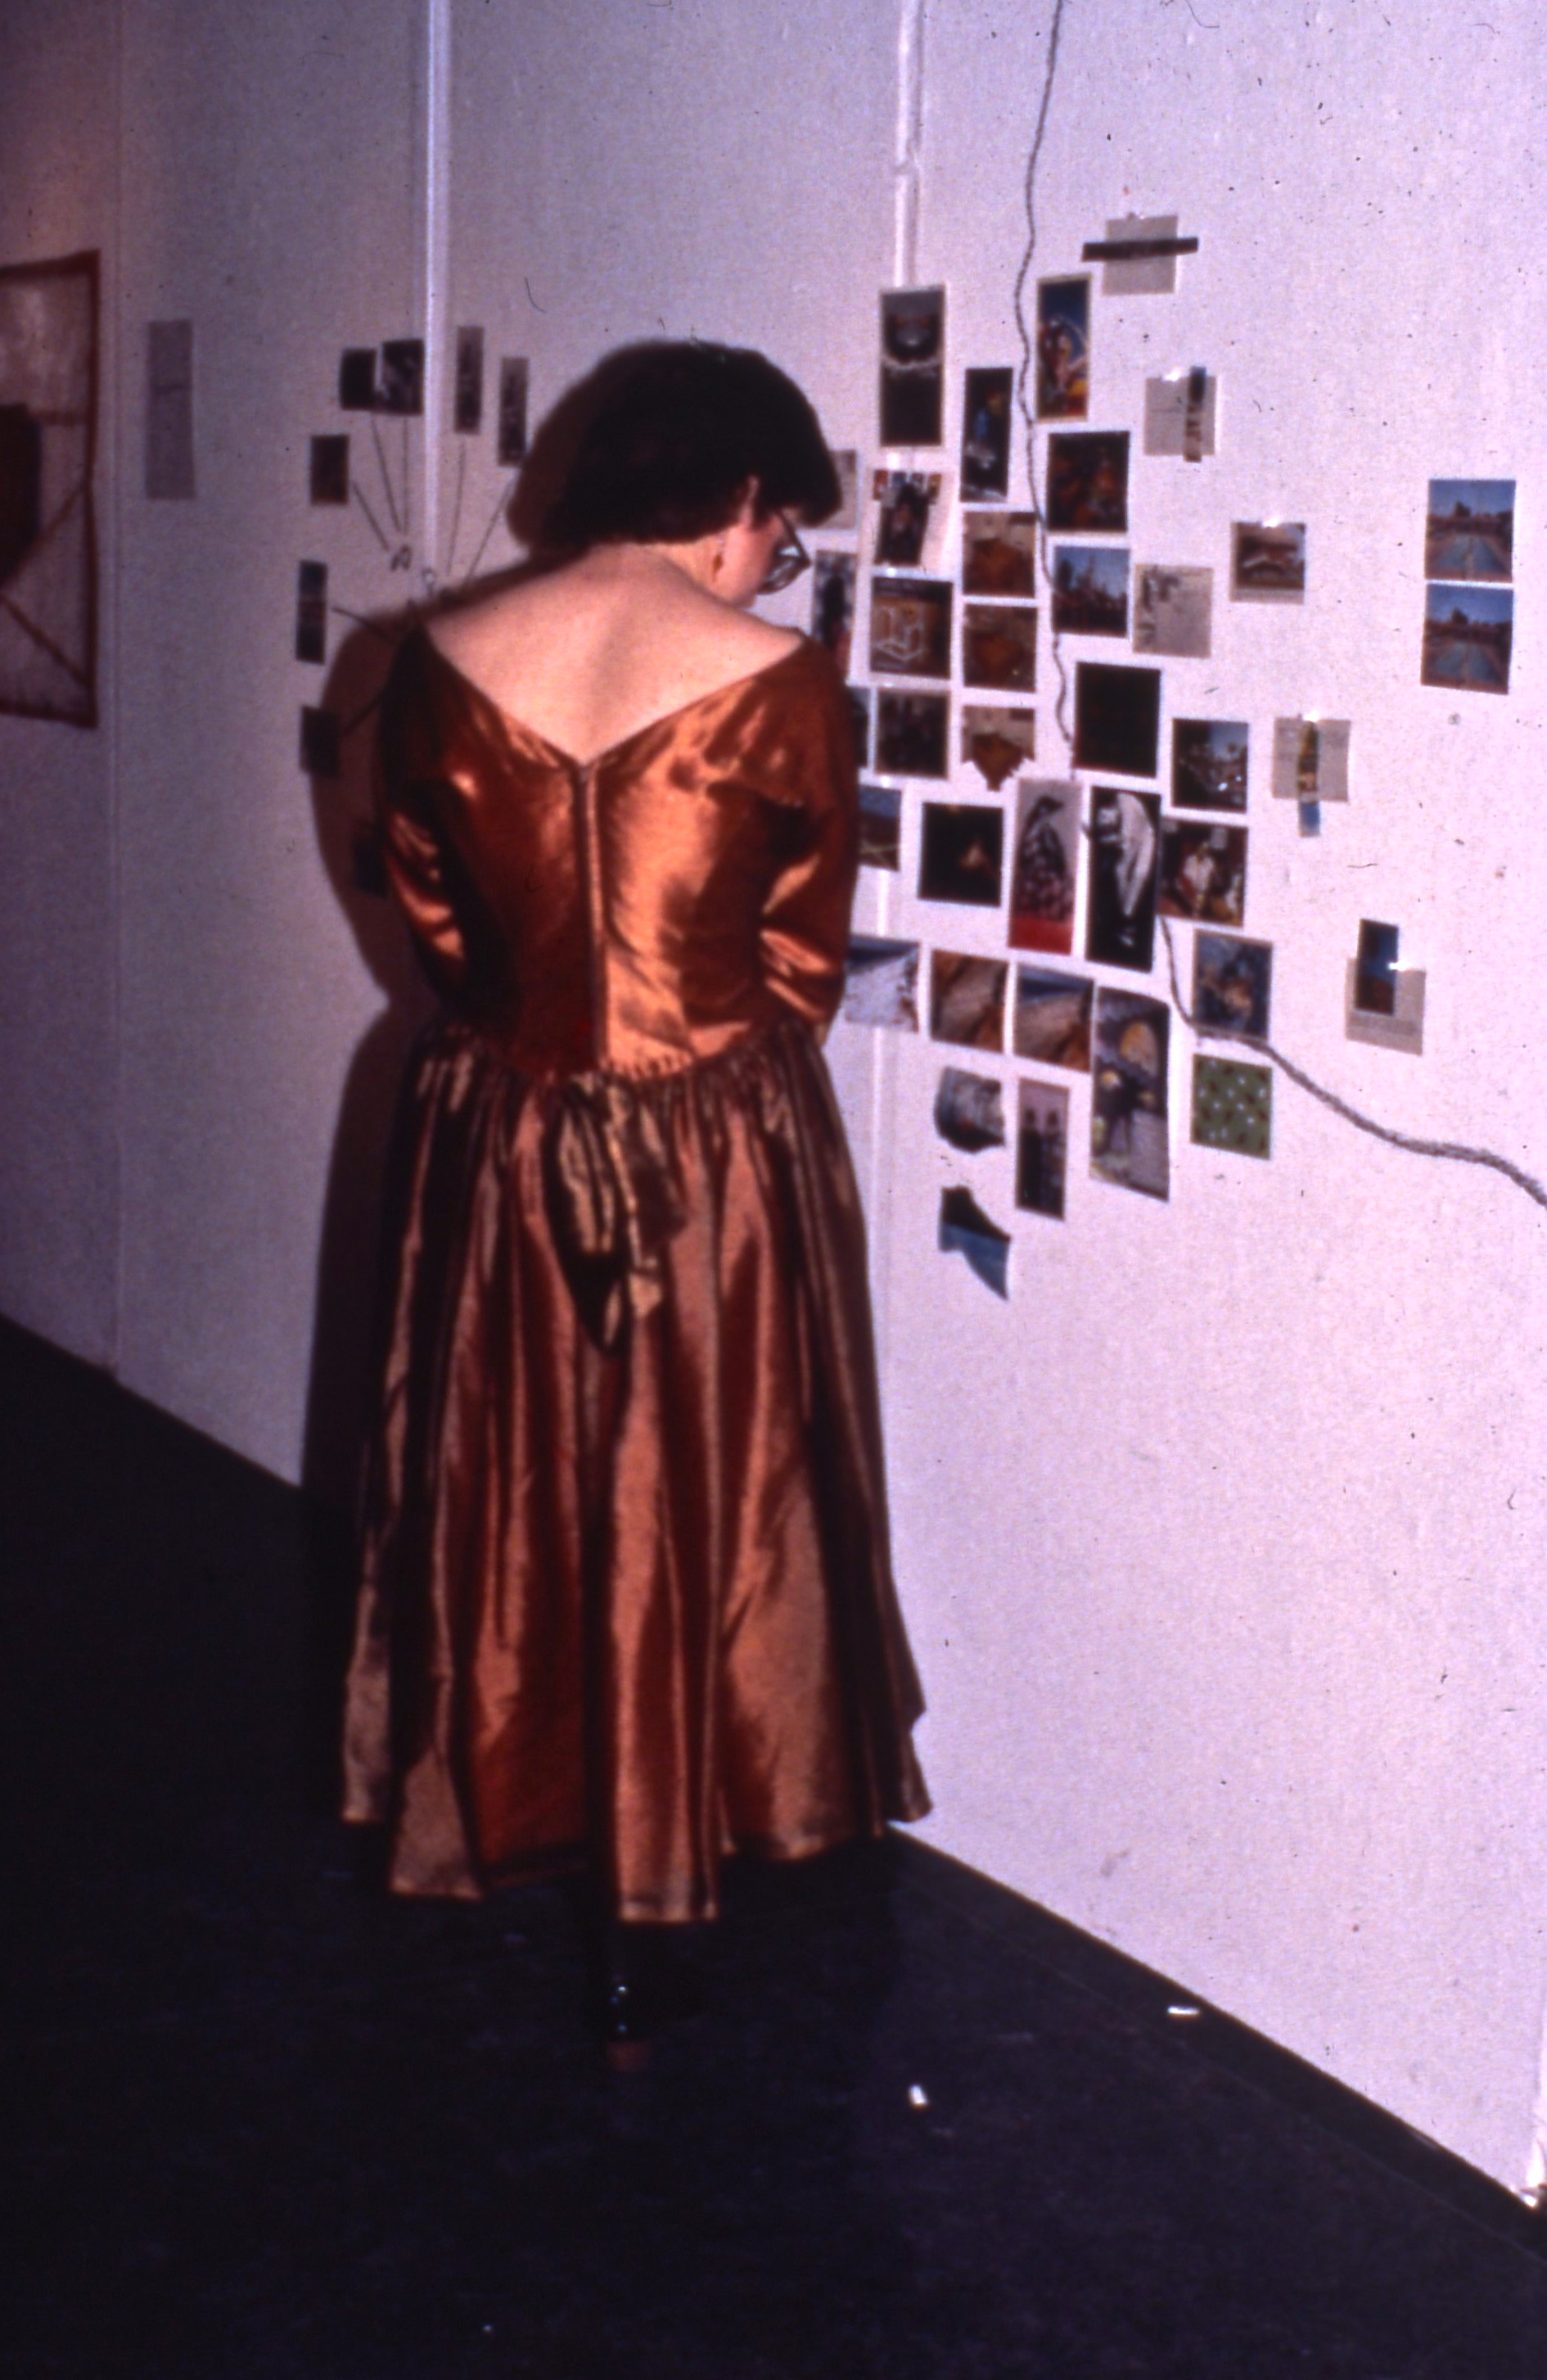 a viewer at the exhibition